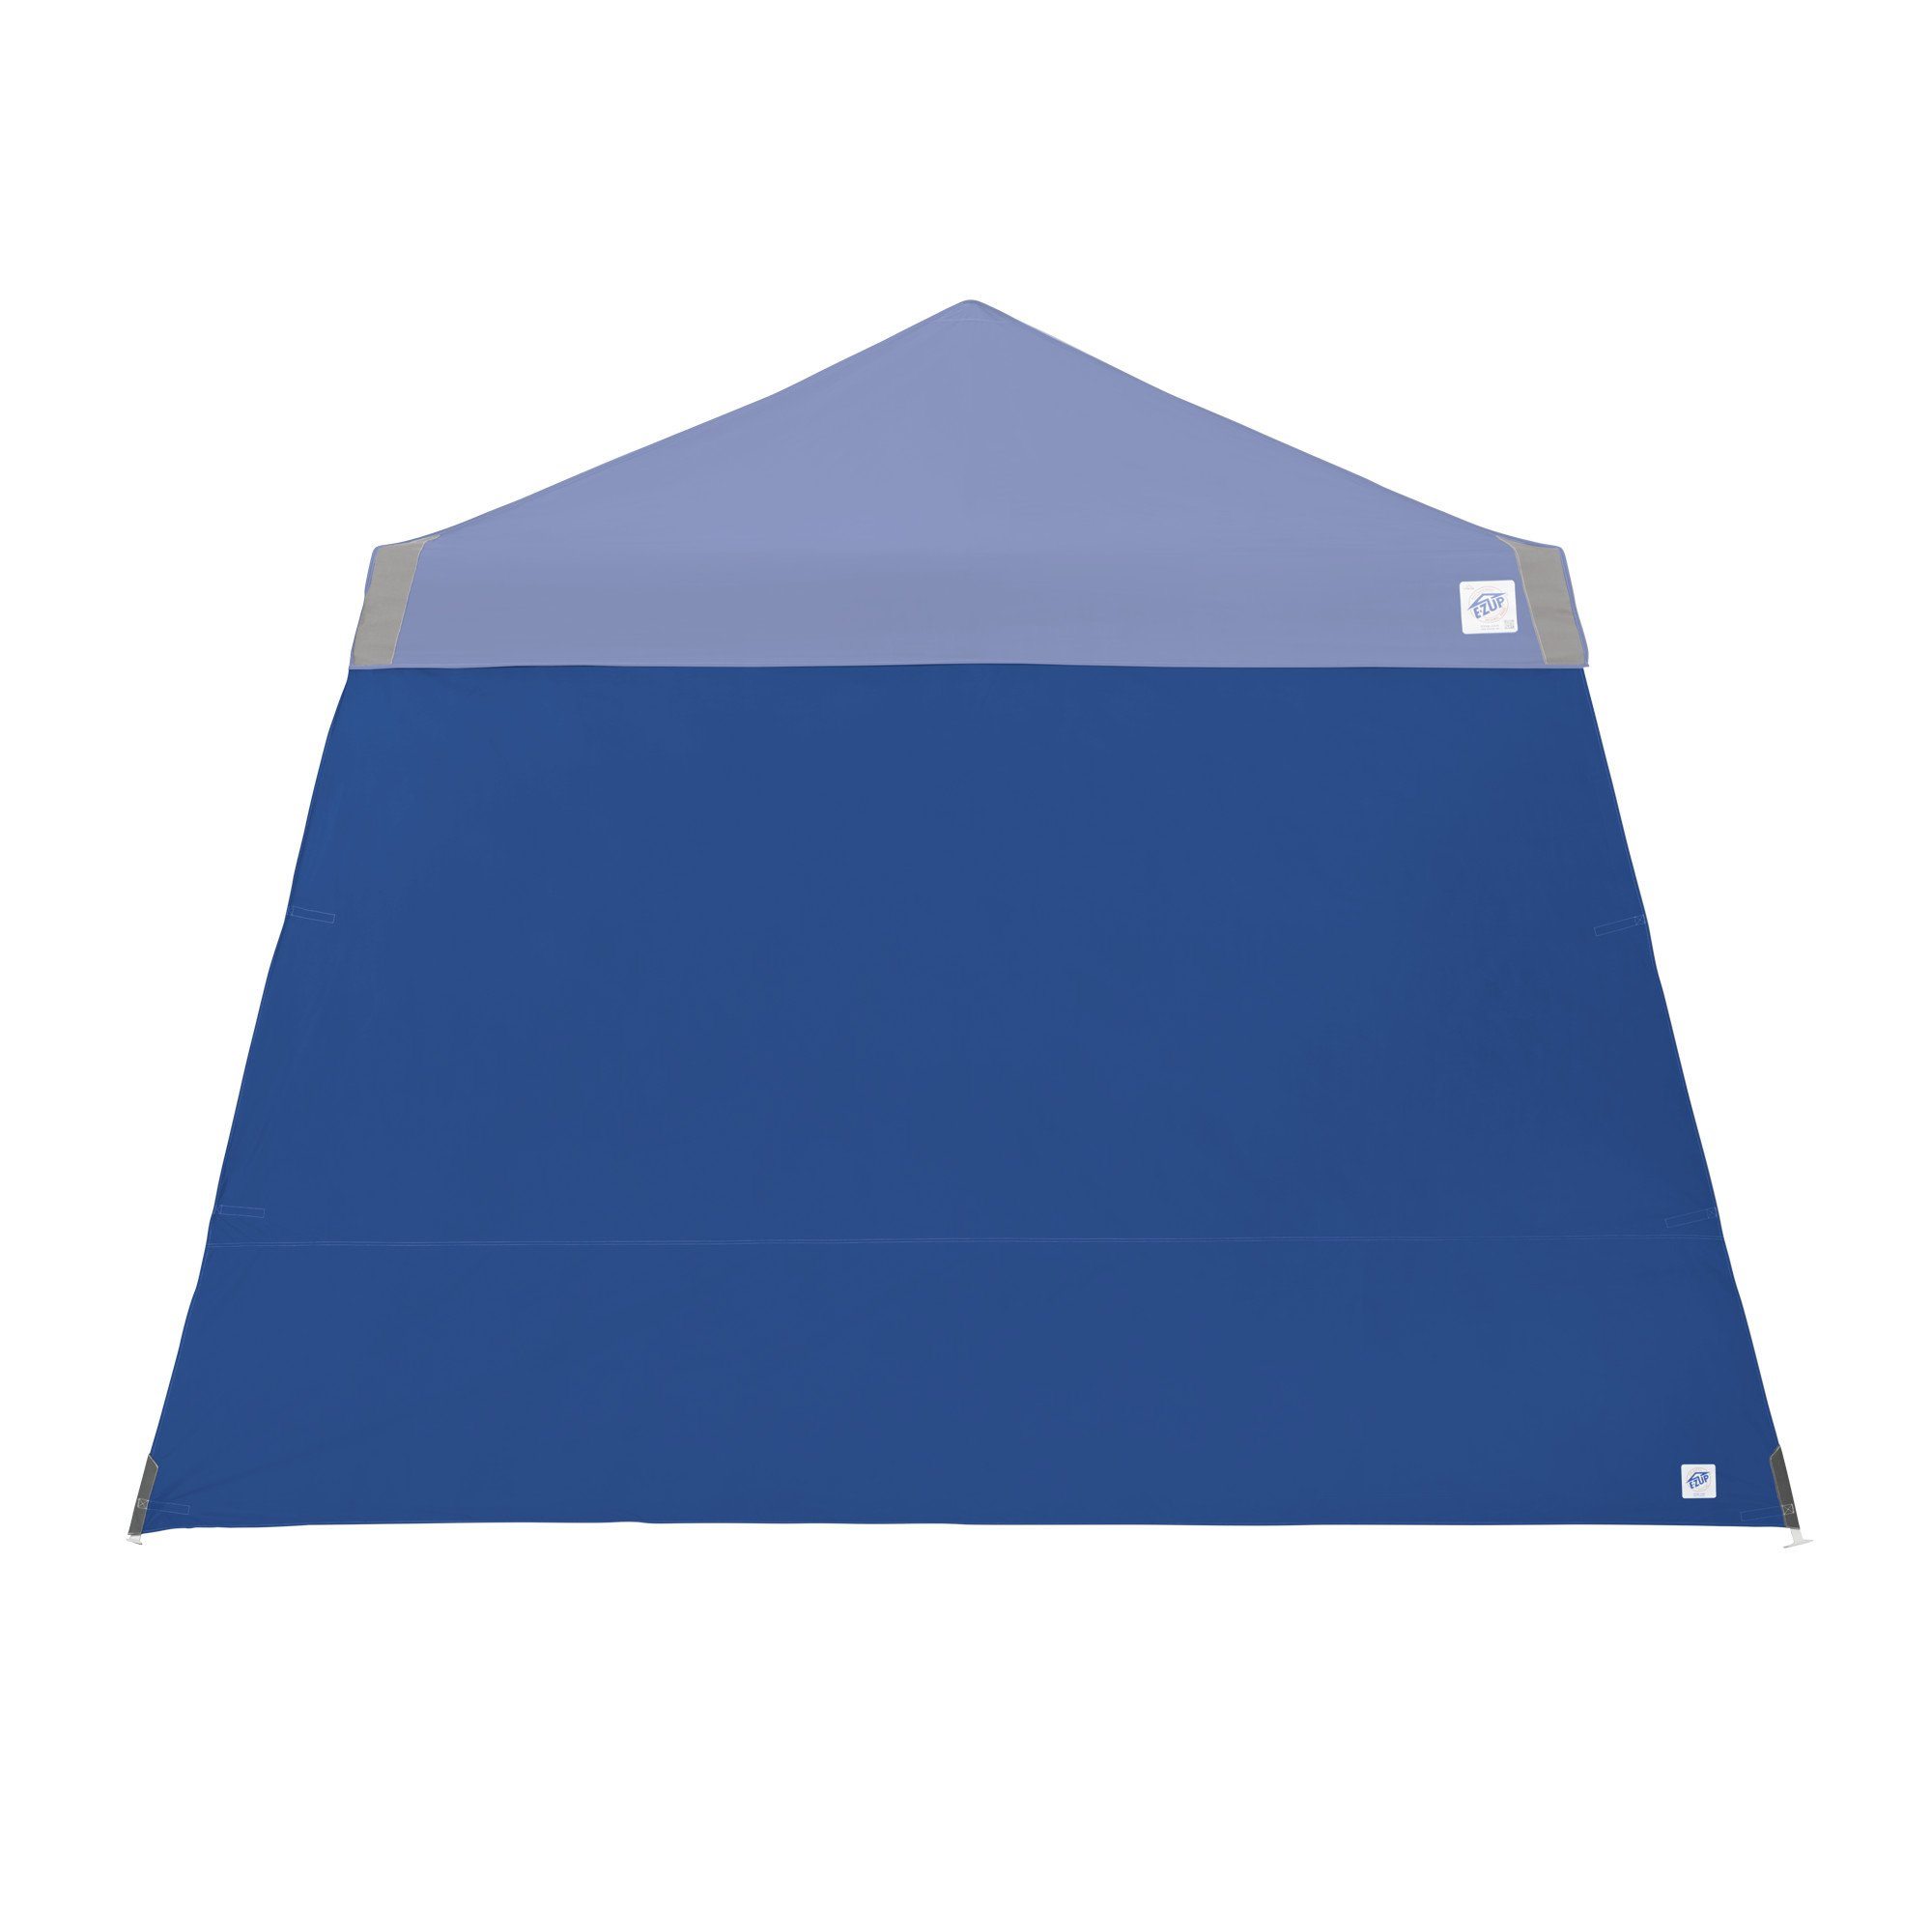 E-Z UP Recreational Sidewall – Royal Blue - Fits Angle Leg 10 Instant Shelters